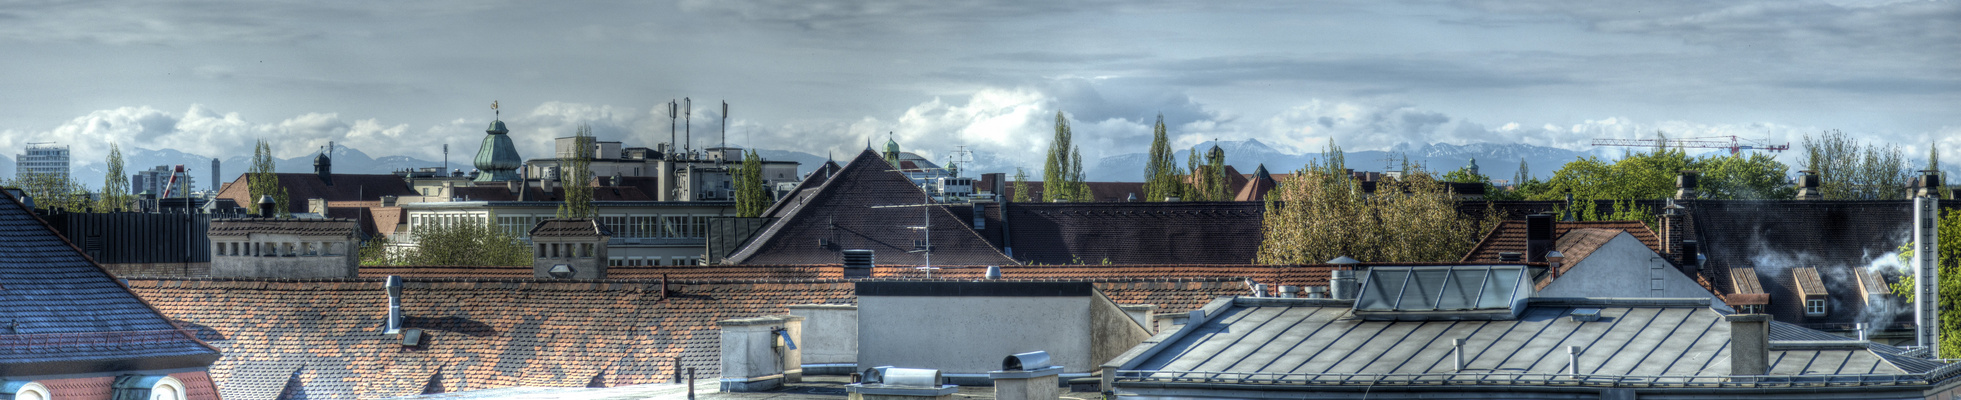 Blick über München HDR Panorama